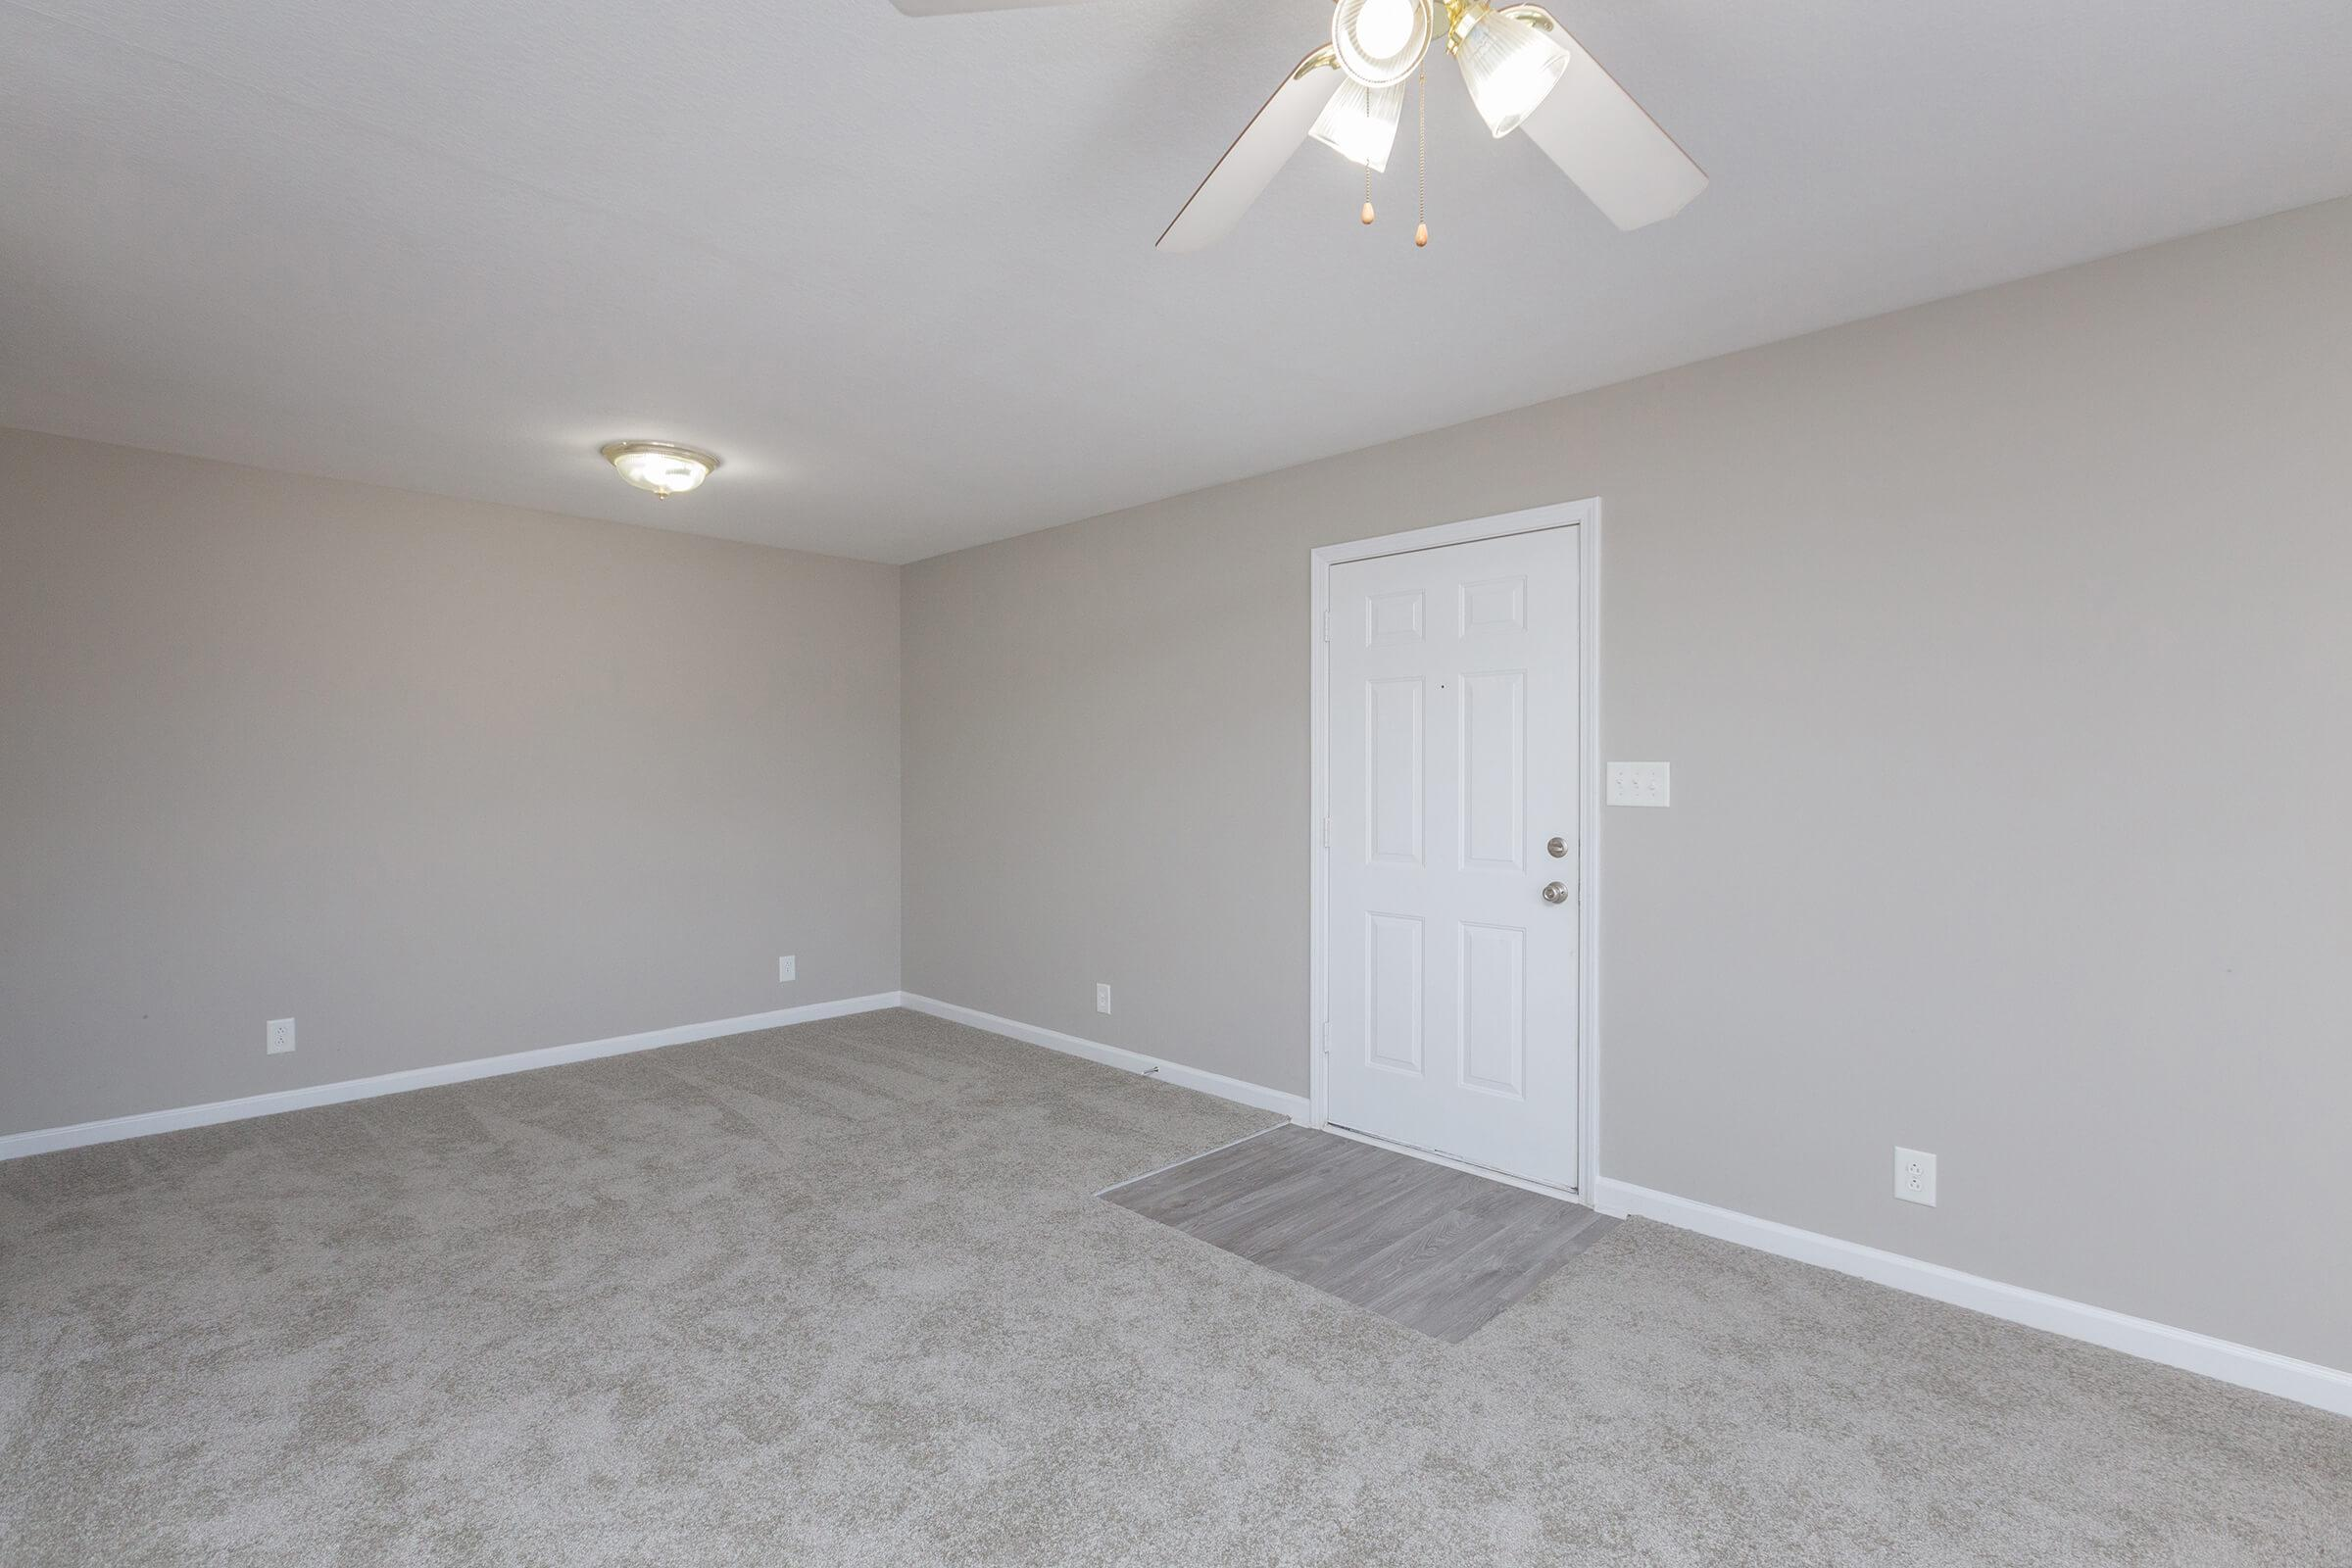 9-Foot Ceilings at Summer Trees Apartments